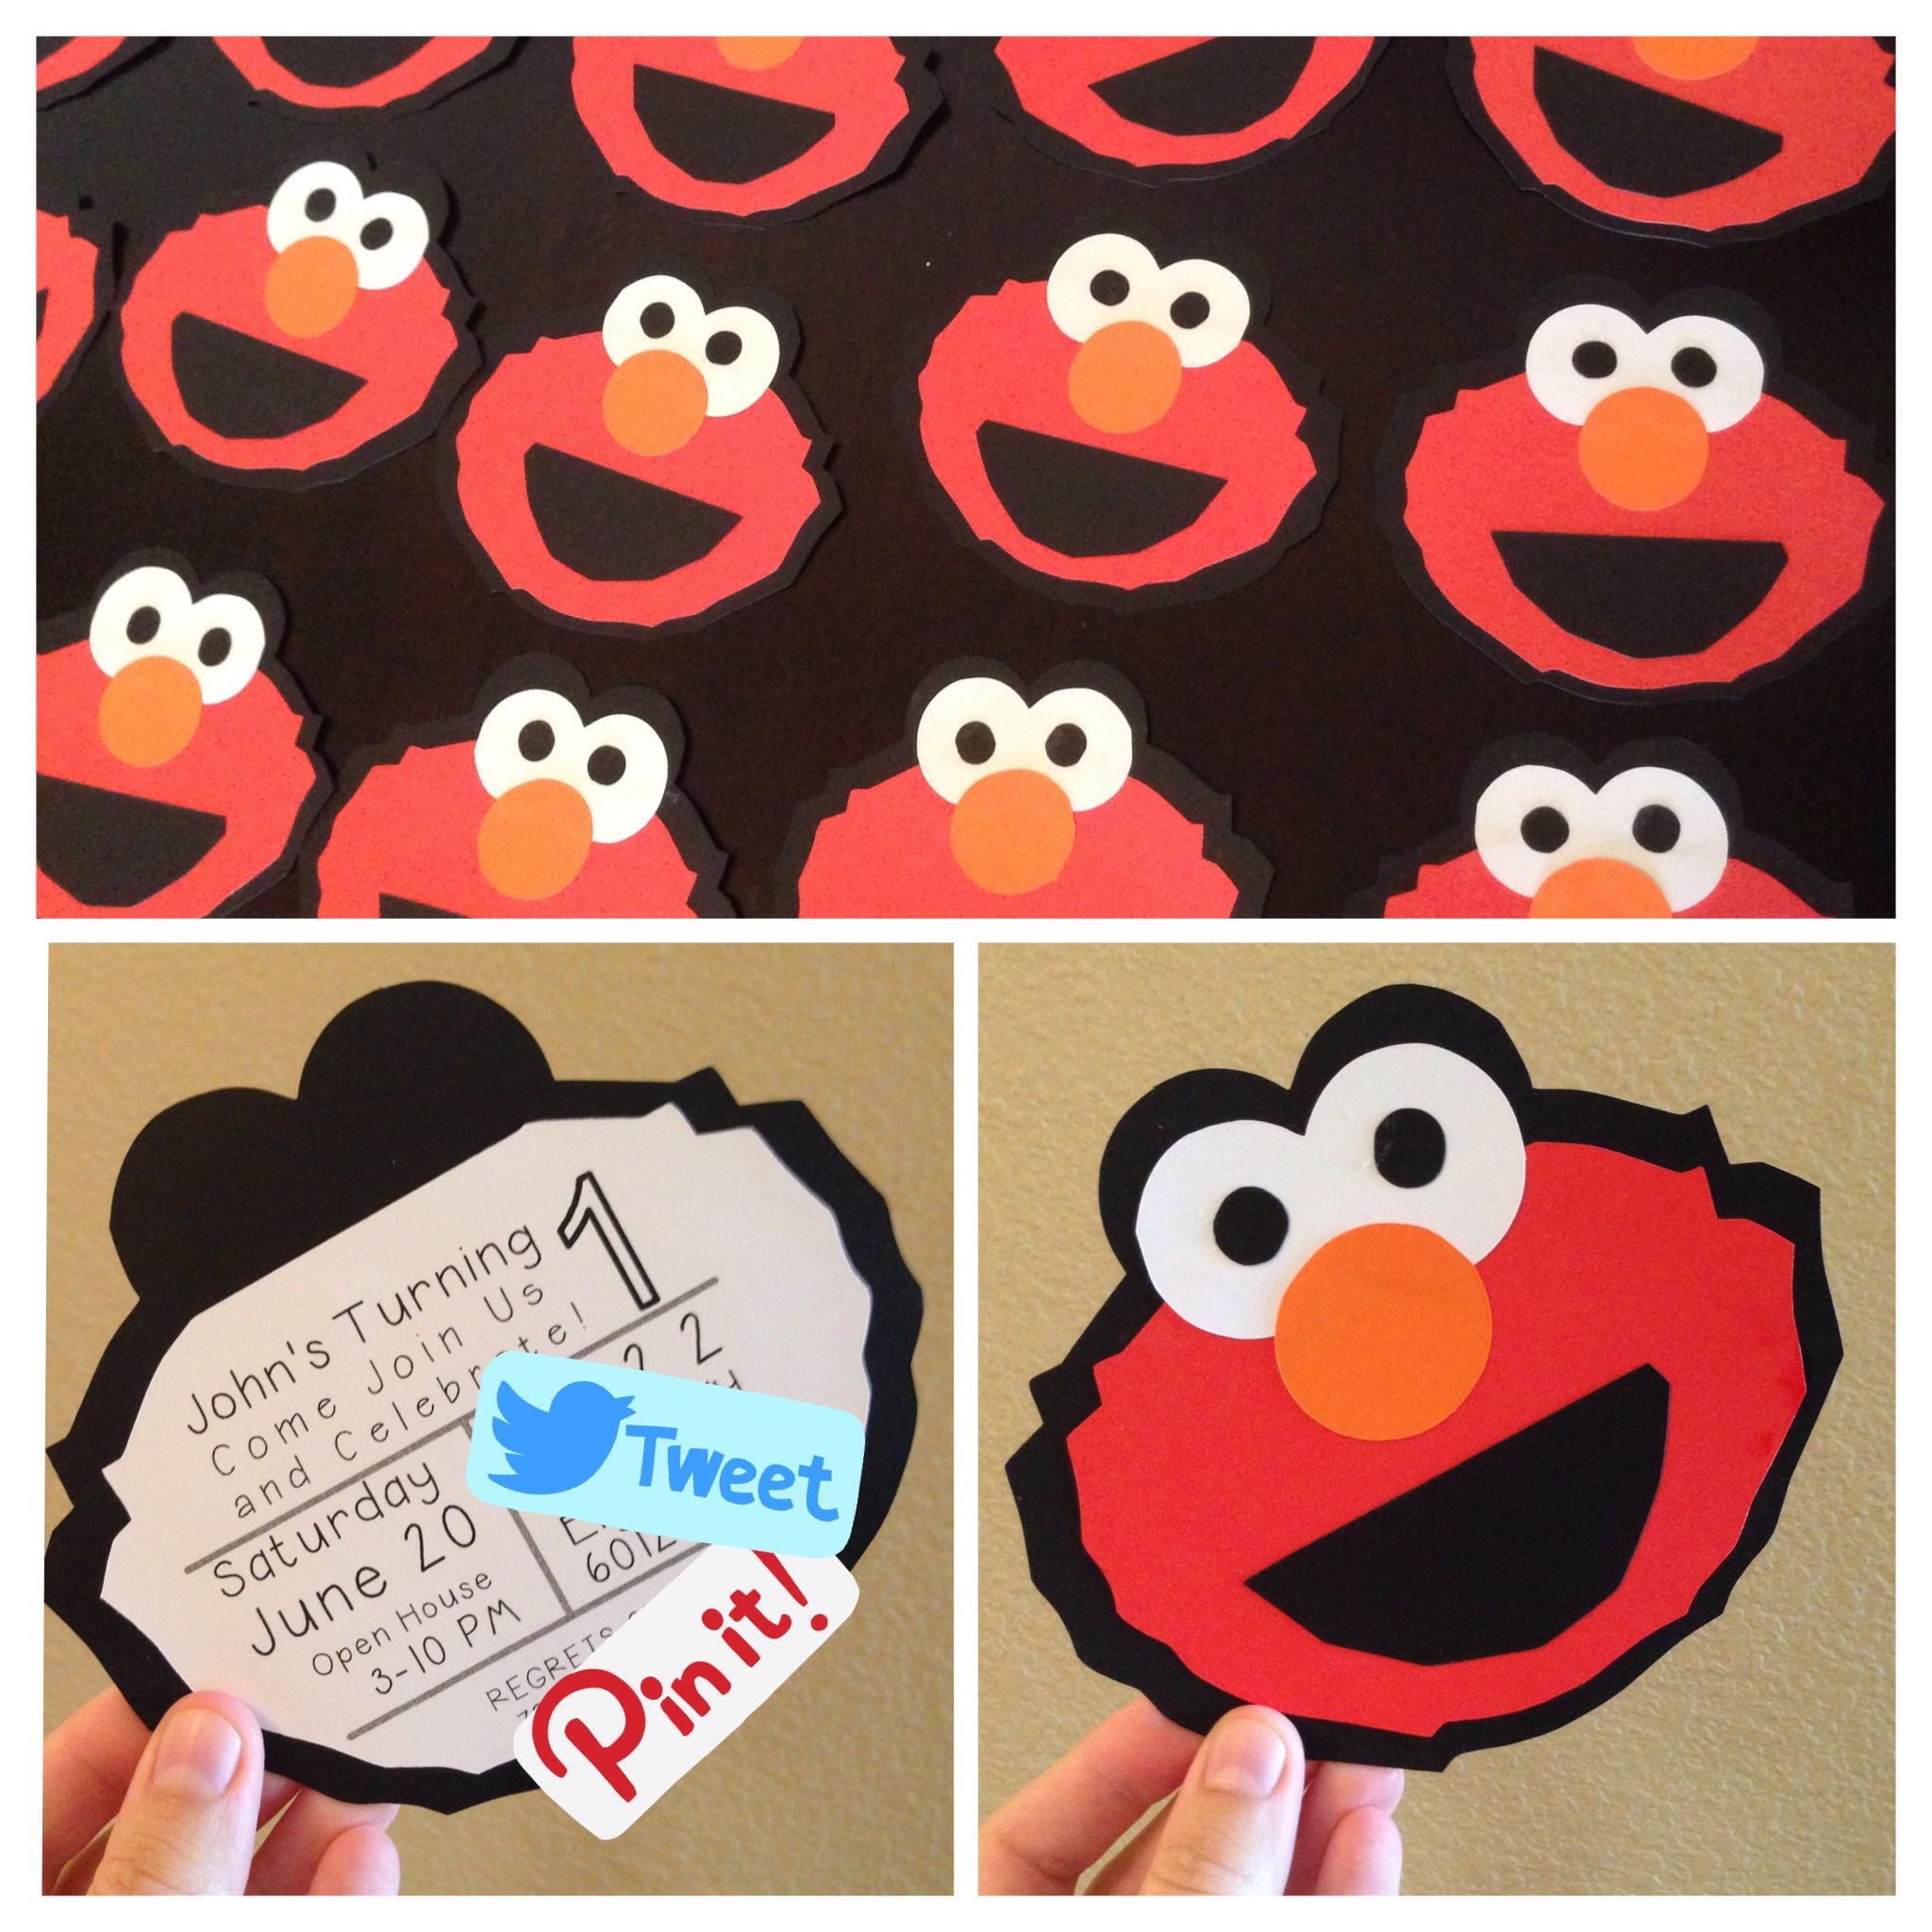 Homemade diy elmo birthday invitations silhouette cameo i have all homemade diy elmo birthday invitations silhouette cameo i have all studio files and text files to send ready to cut message for details solutioingenieria Images